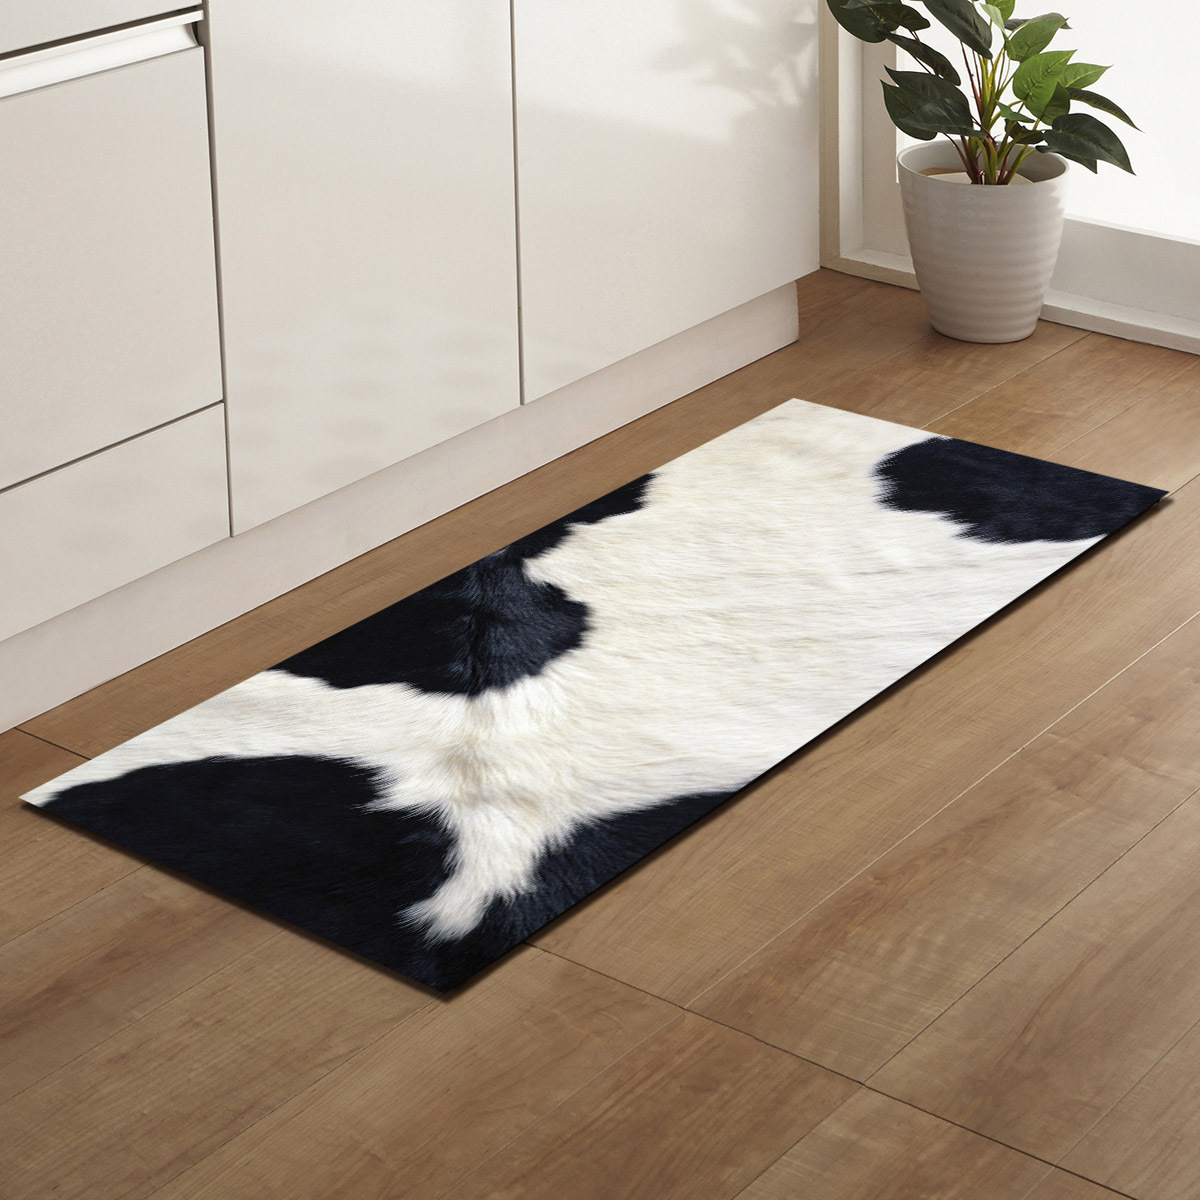 Antiskid Mat For Kitchen Floor Long Door Mat 3D Cow Tiger Animal Fur Printed Kitchen Rug Non-Slip Bedroom Bedside Mats